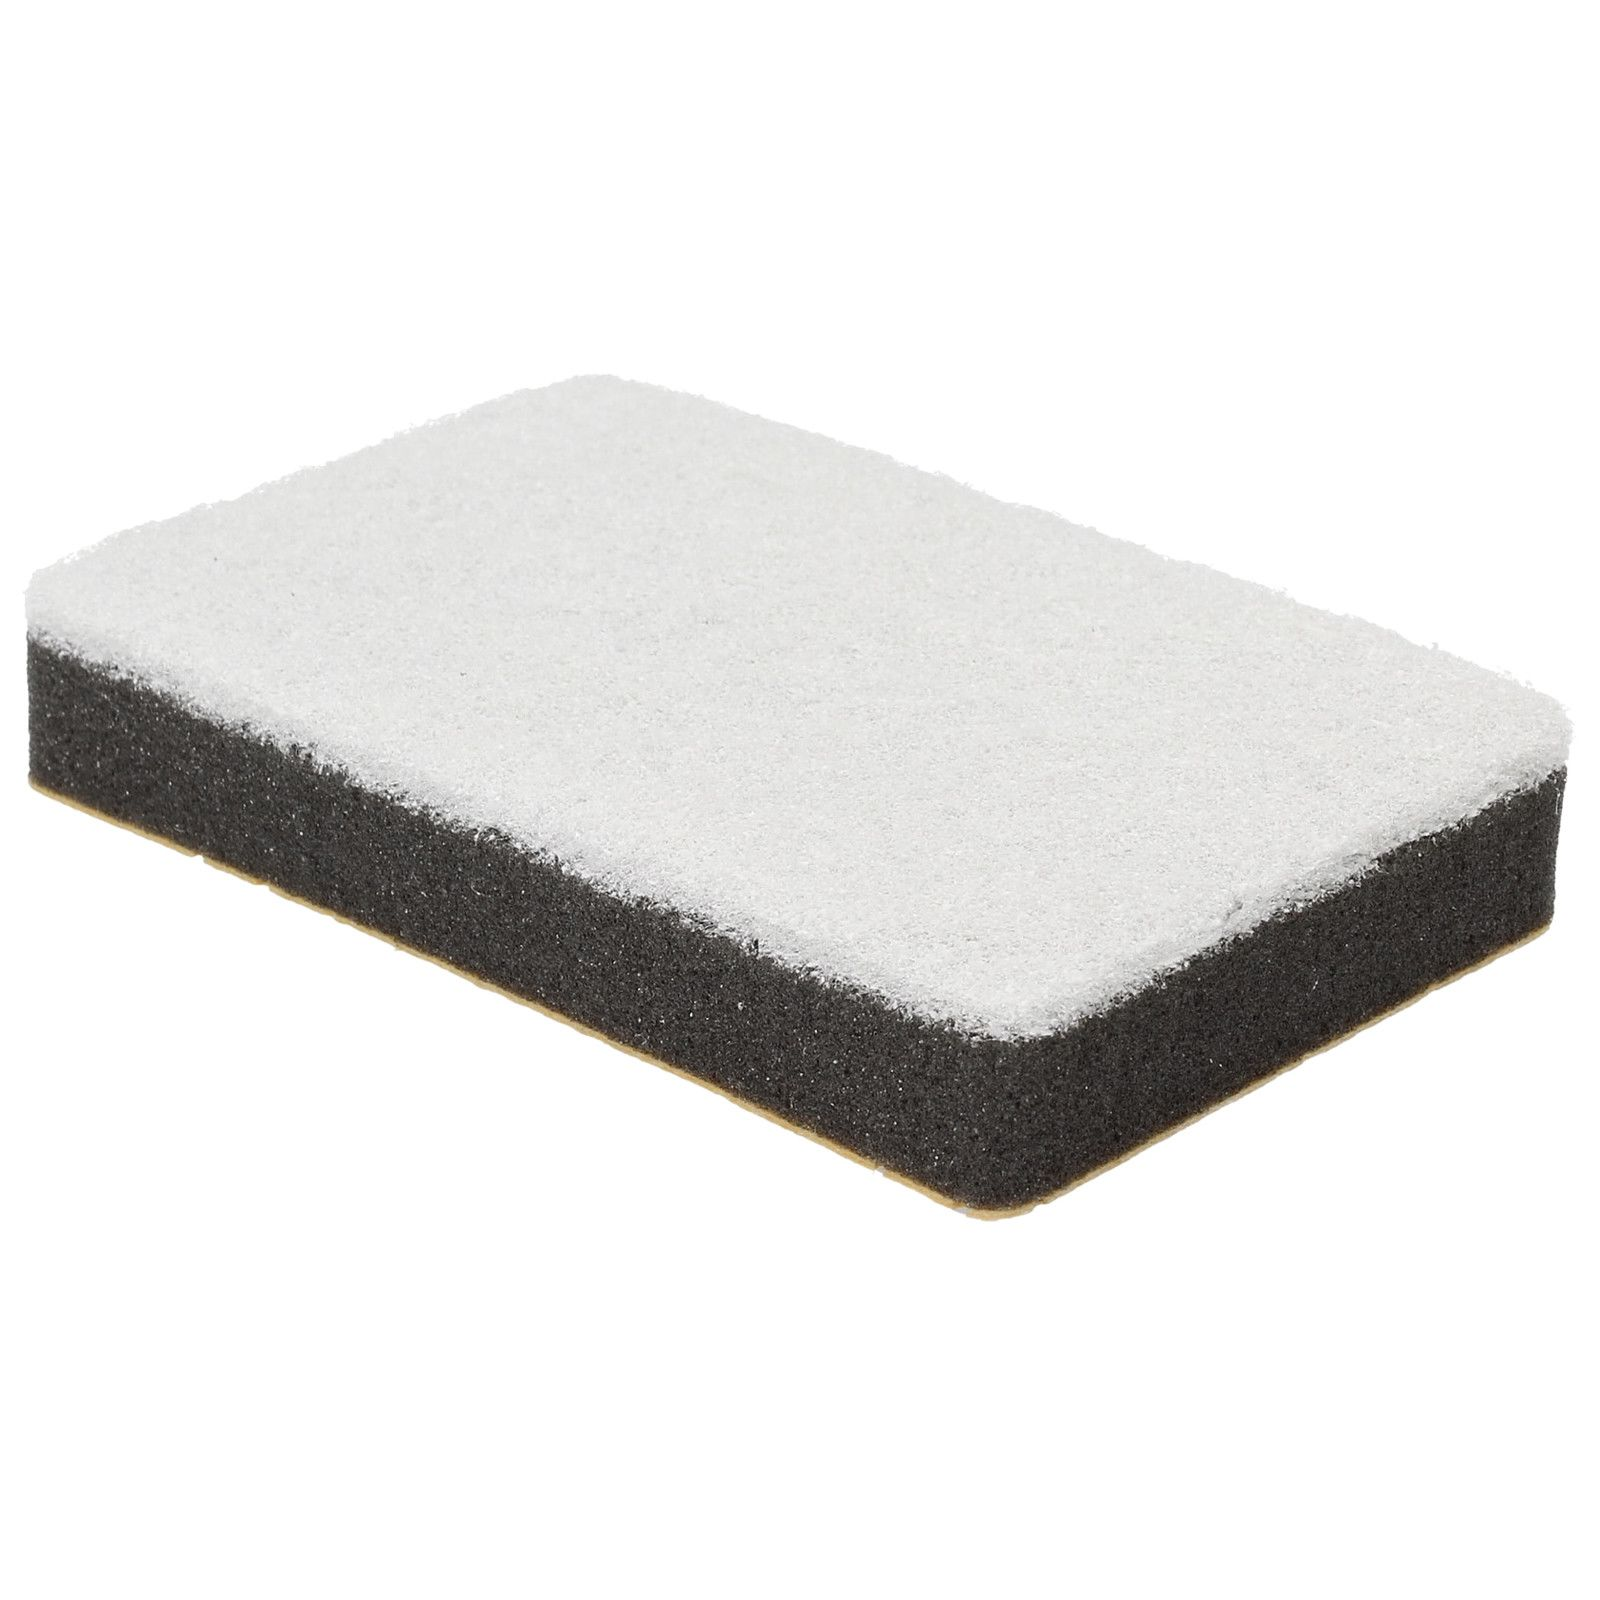 Joest - Cleaning Pad - Clean and Dry